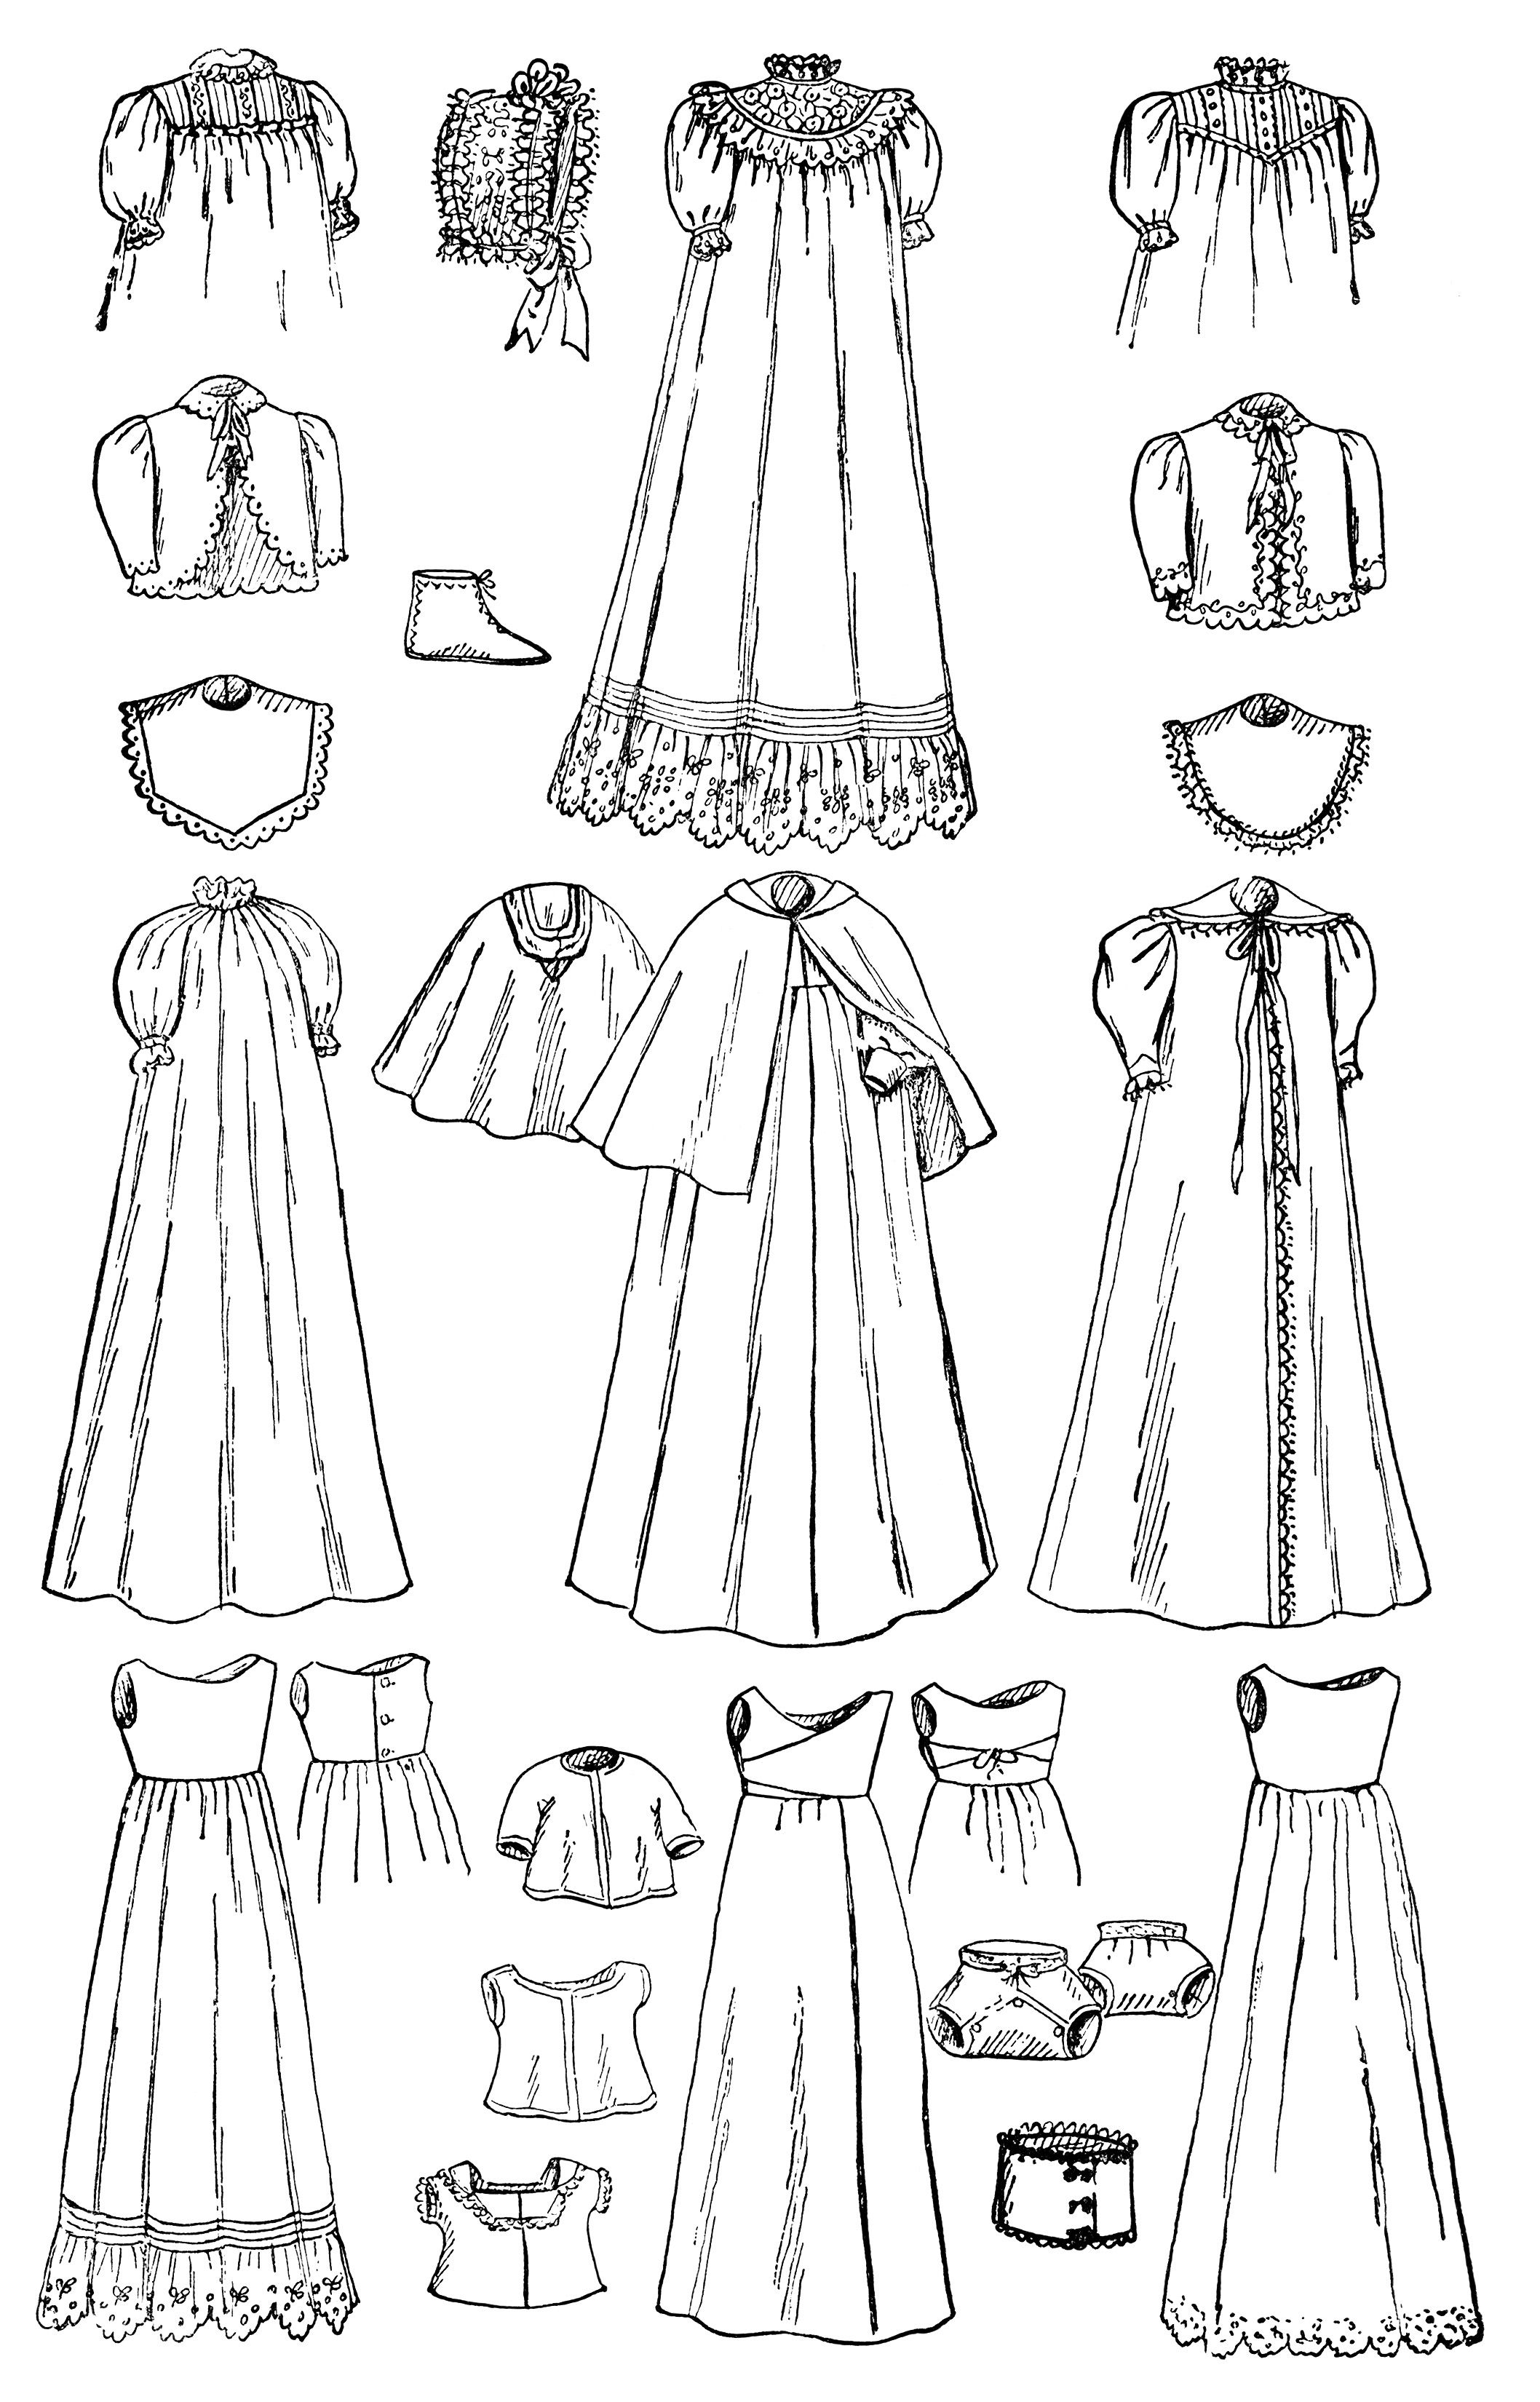 Wardrobe clipart black and white  vintage baby clip art, black and white graphics, infants wardrobe ...